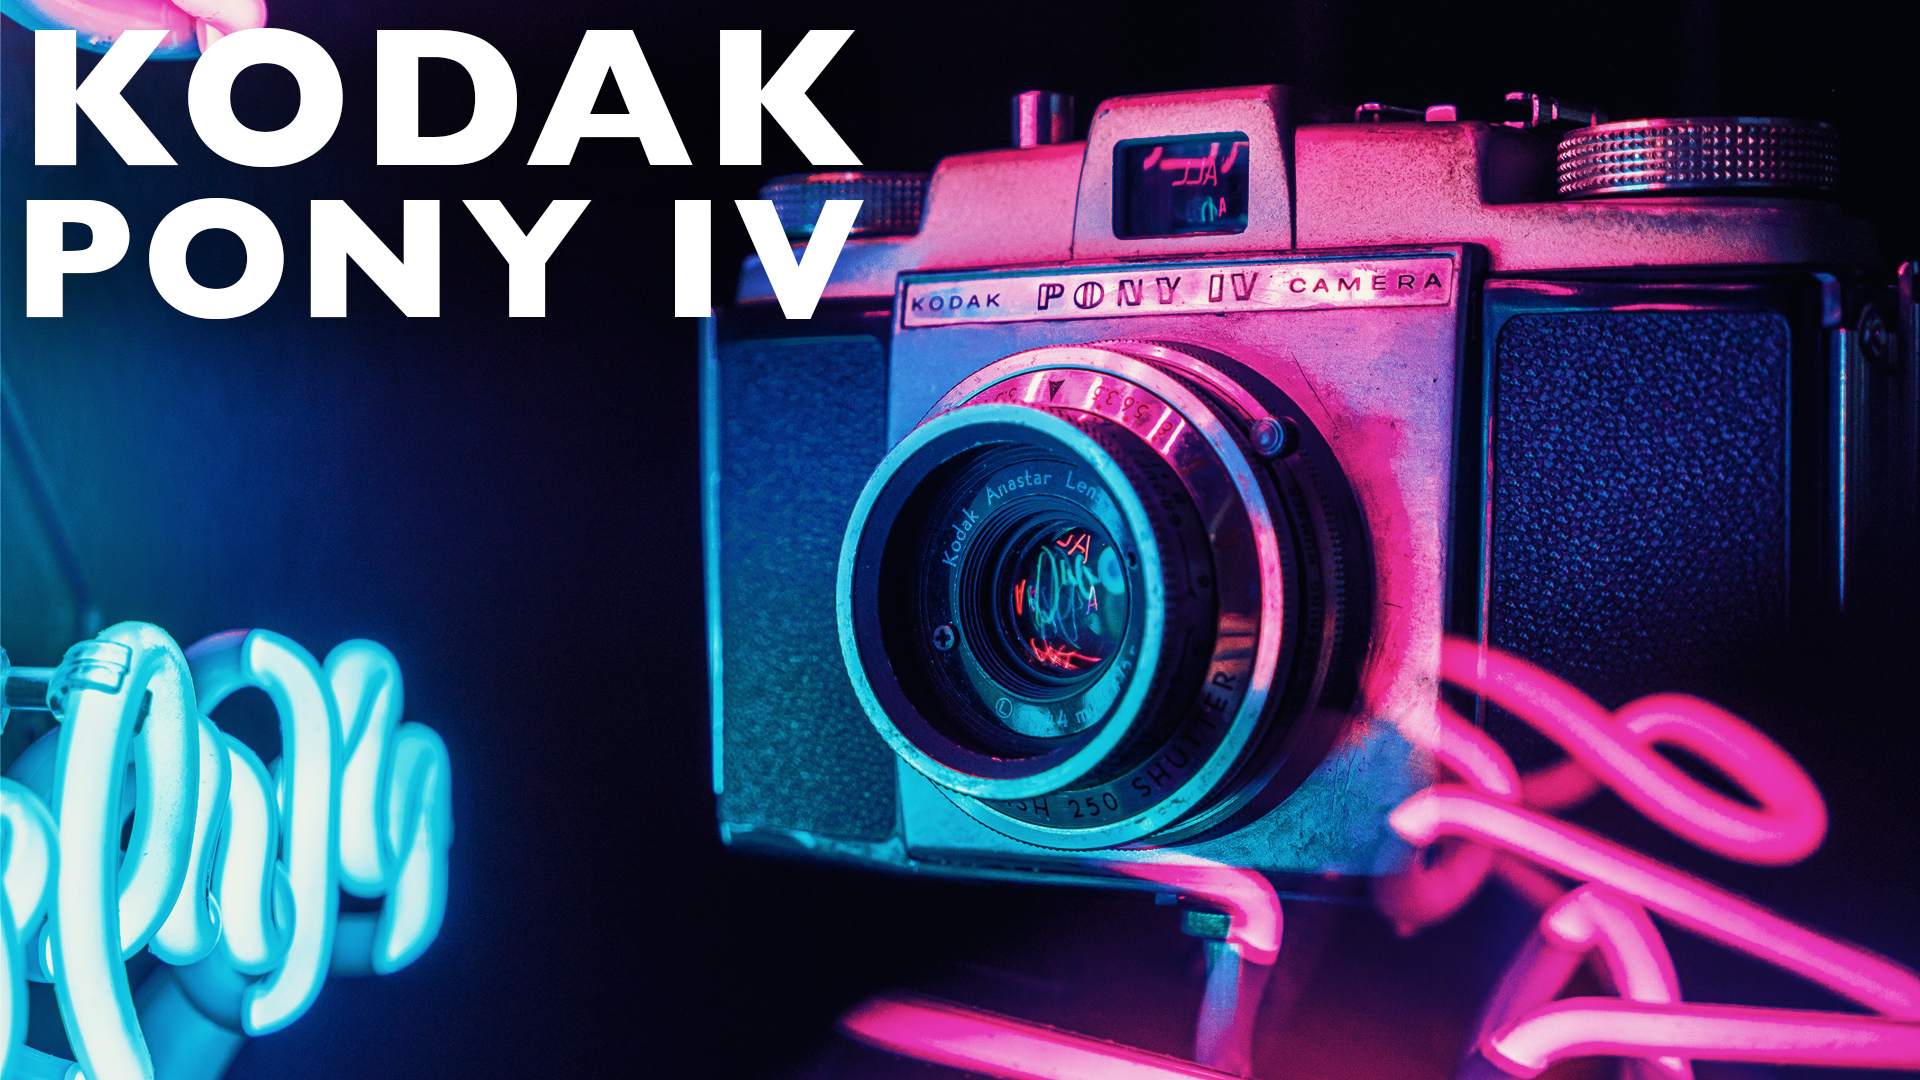 Kodak Pony IV Camera